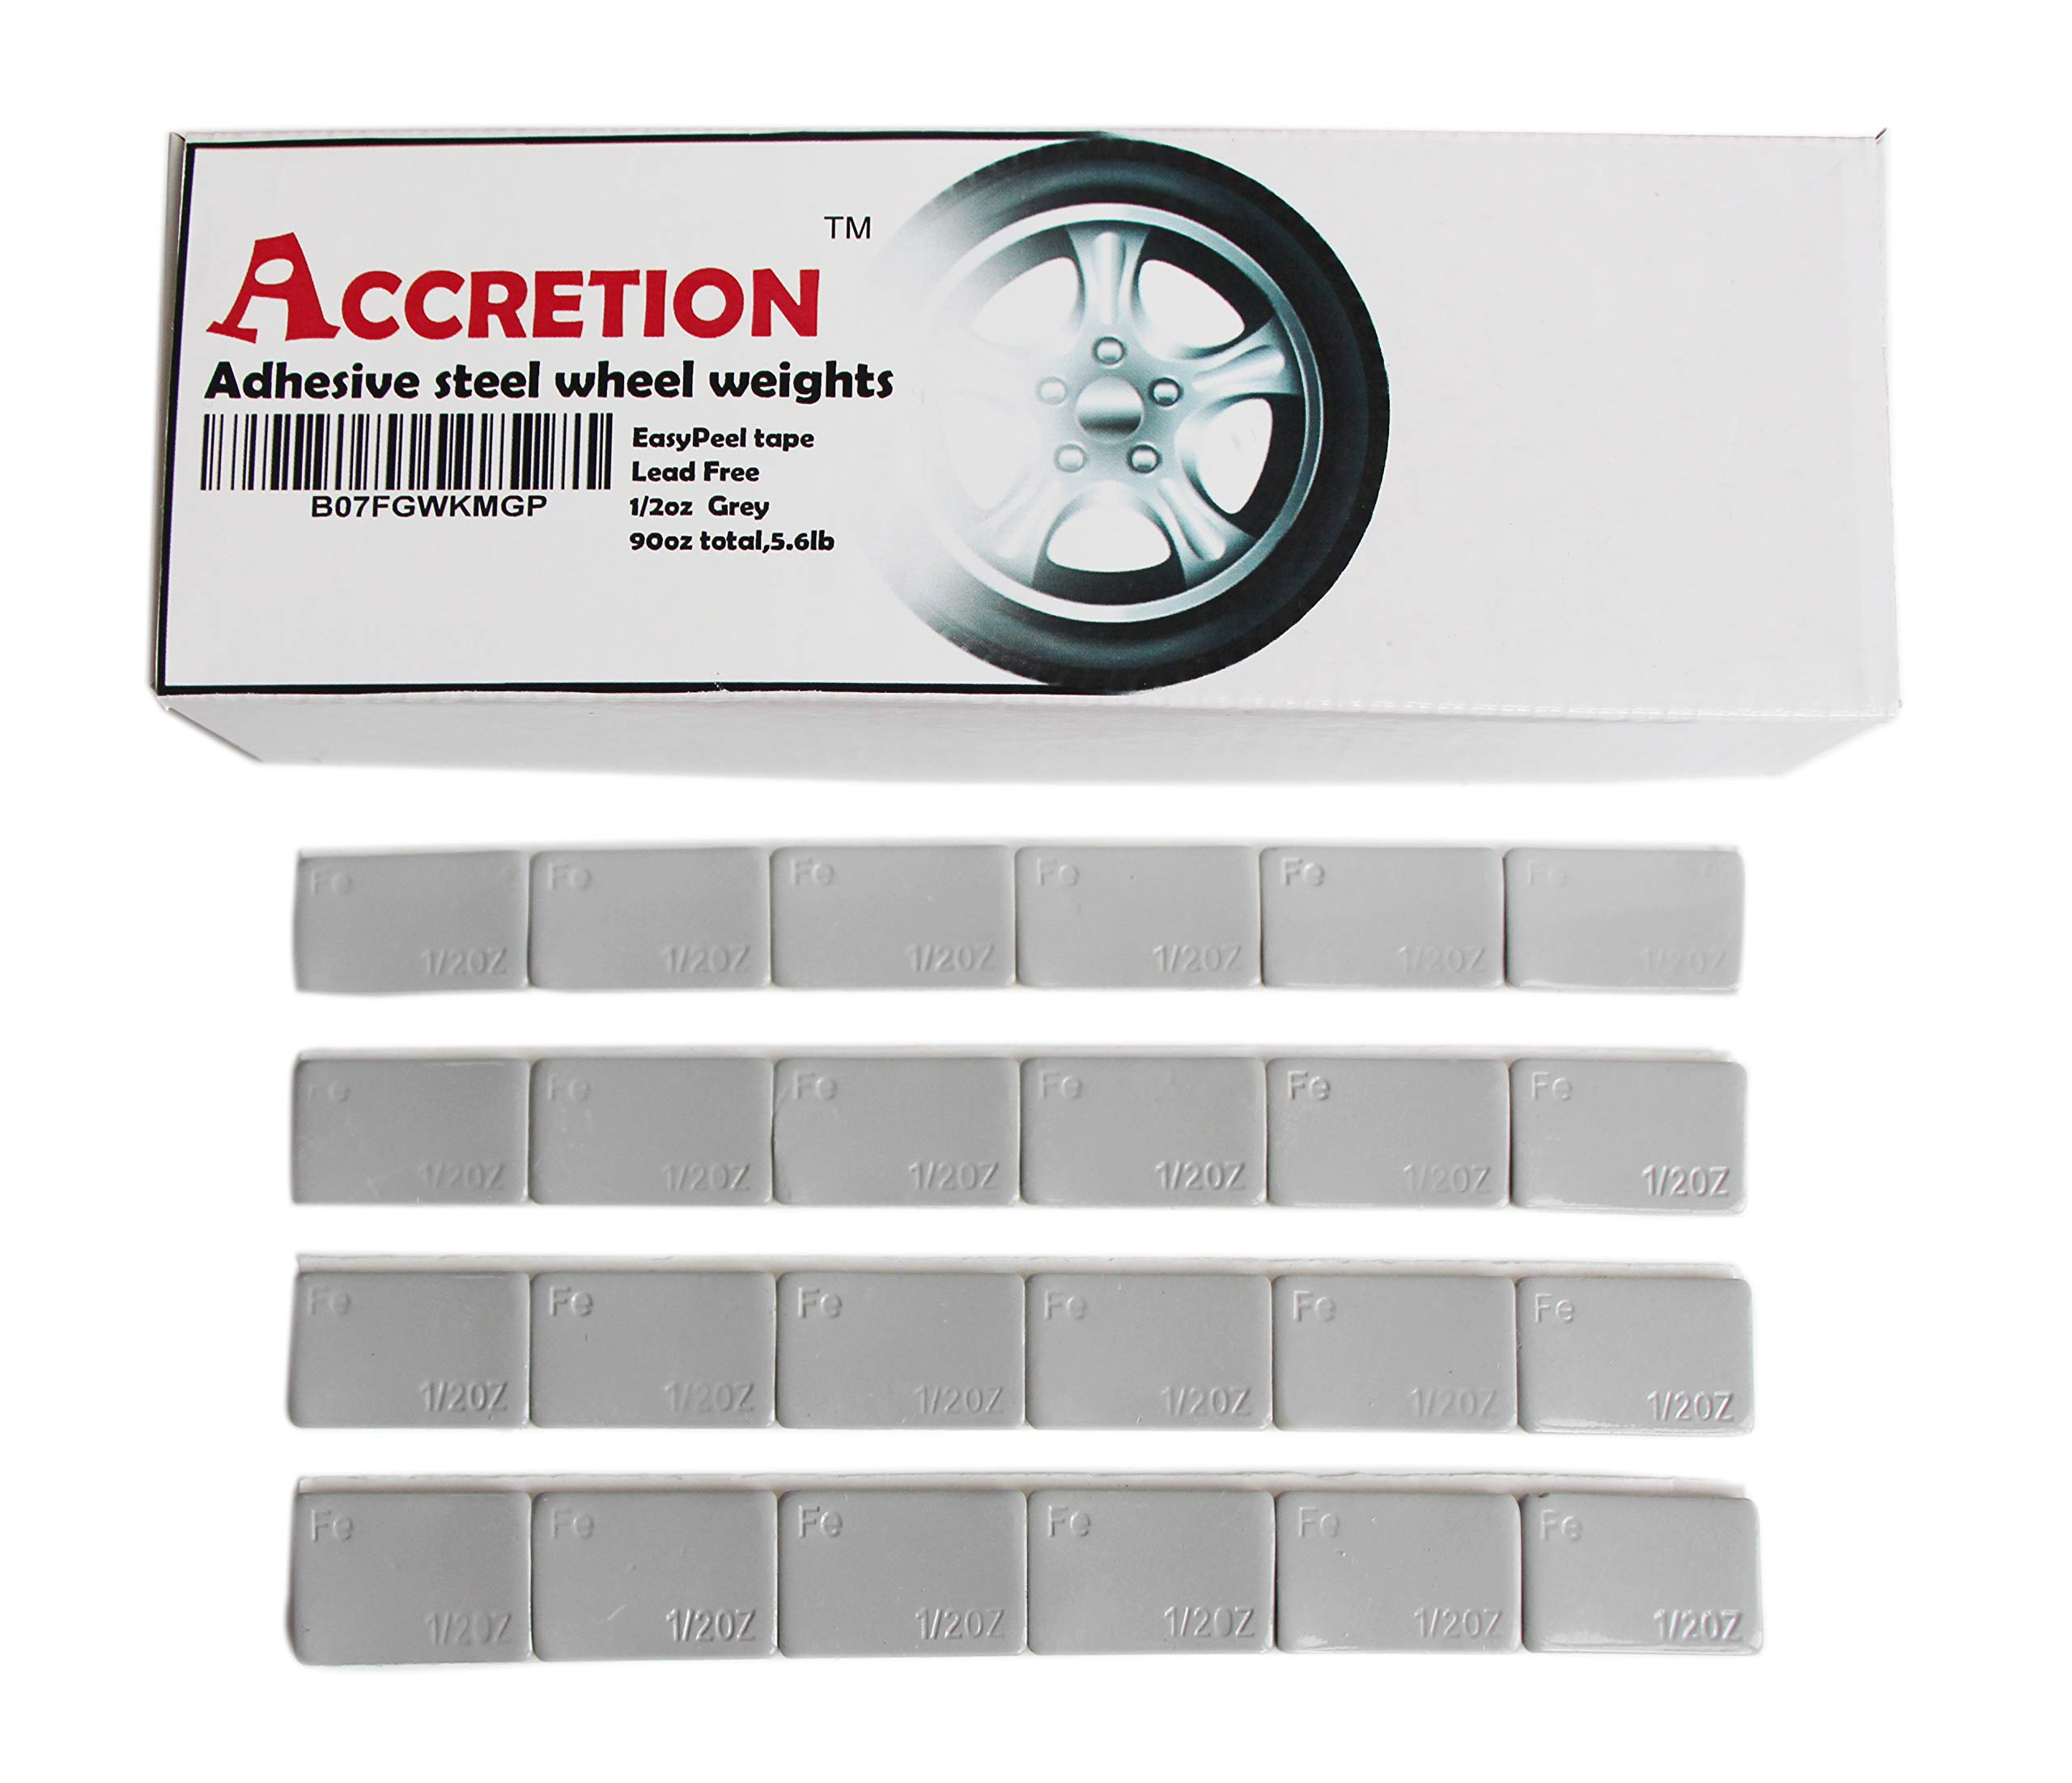 Accretion 1/2 Oz, 0.5 Oz Grey Wheel Weights (Lead Free). U.S.Made White Tape-2 mm Wide, Easy to Peel. Low Profile. 90 Oz Total,5.6 Lbs(180 pcs)